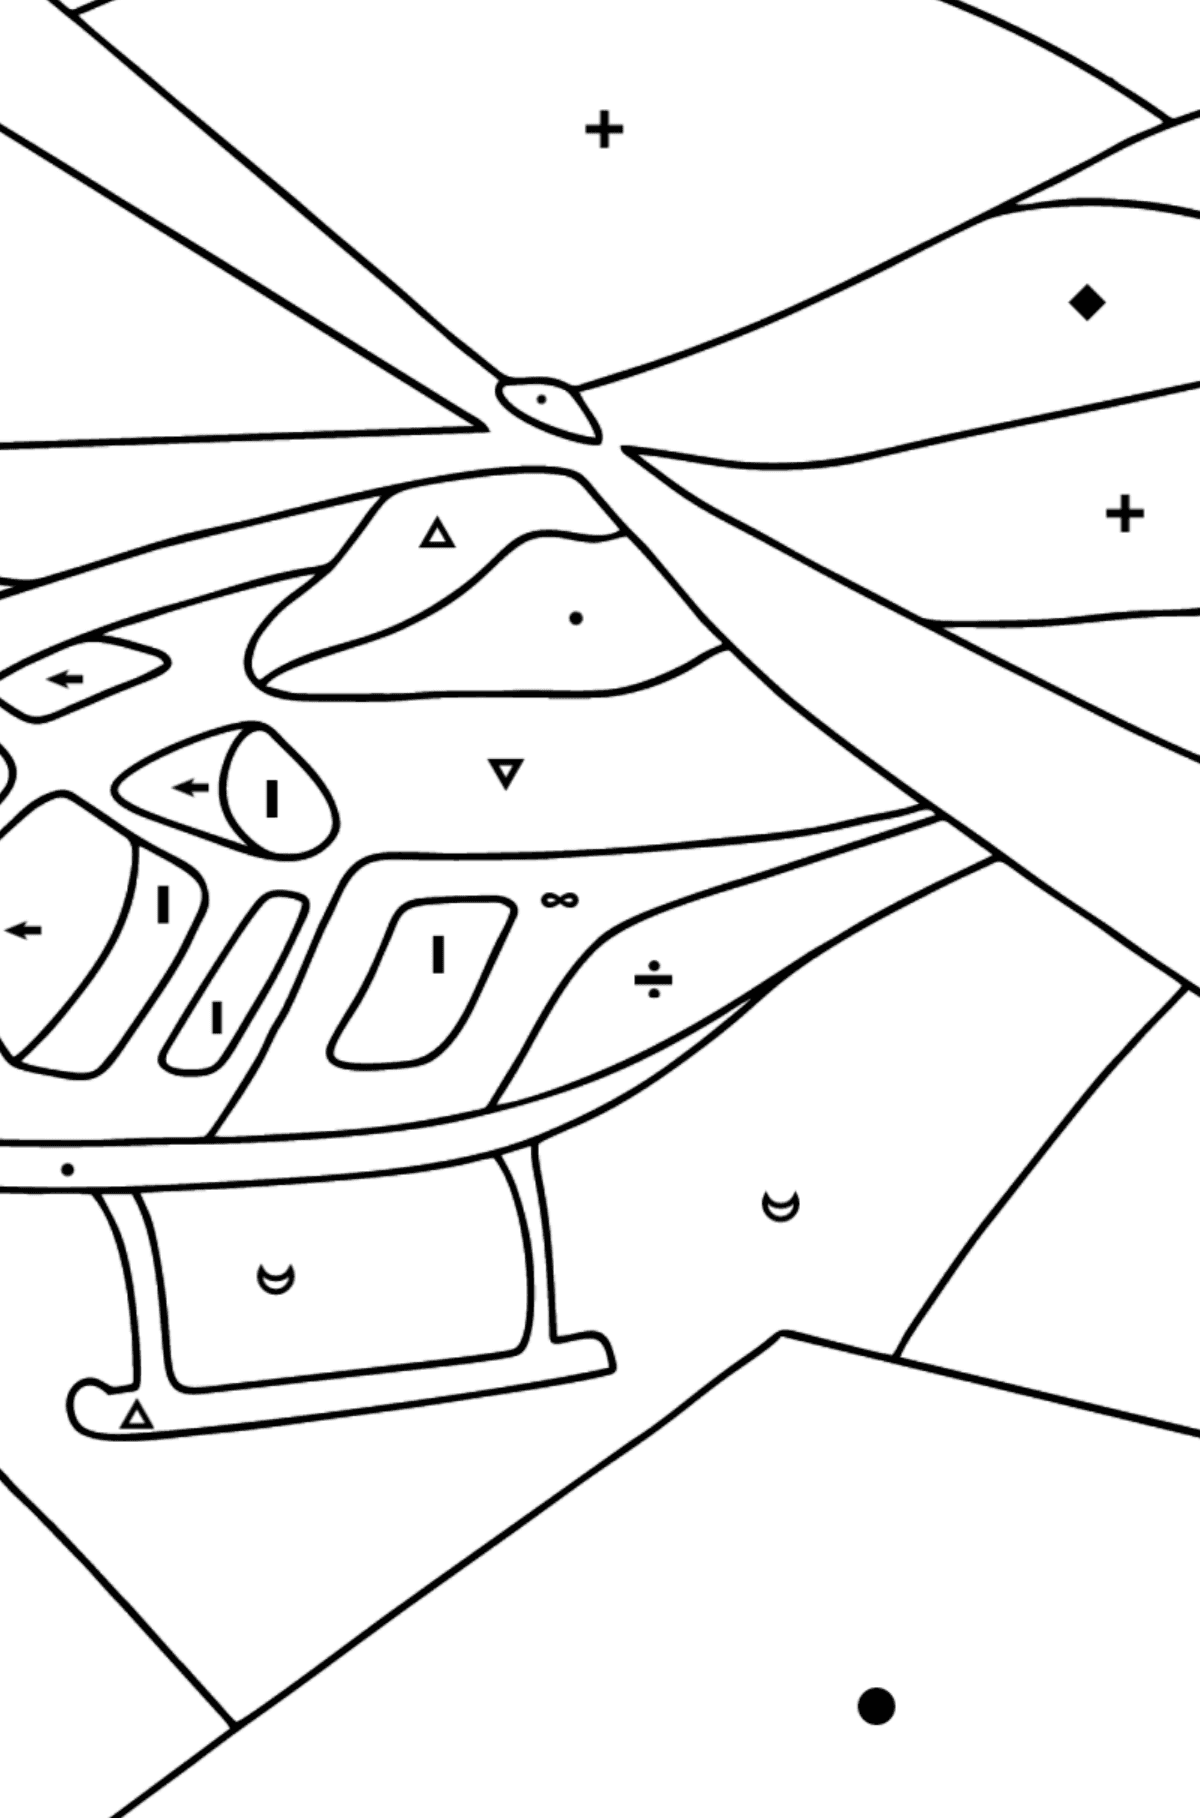 Coloring Page - A Sport Helicopter - Coloring by Symbols for Kids